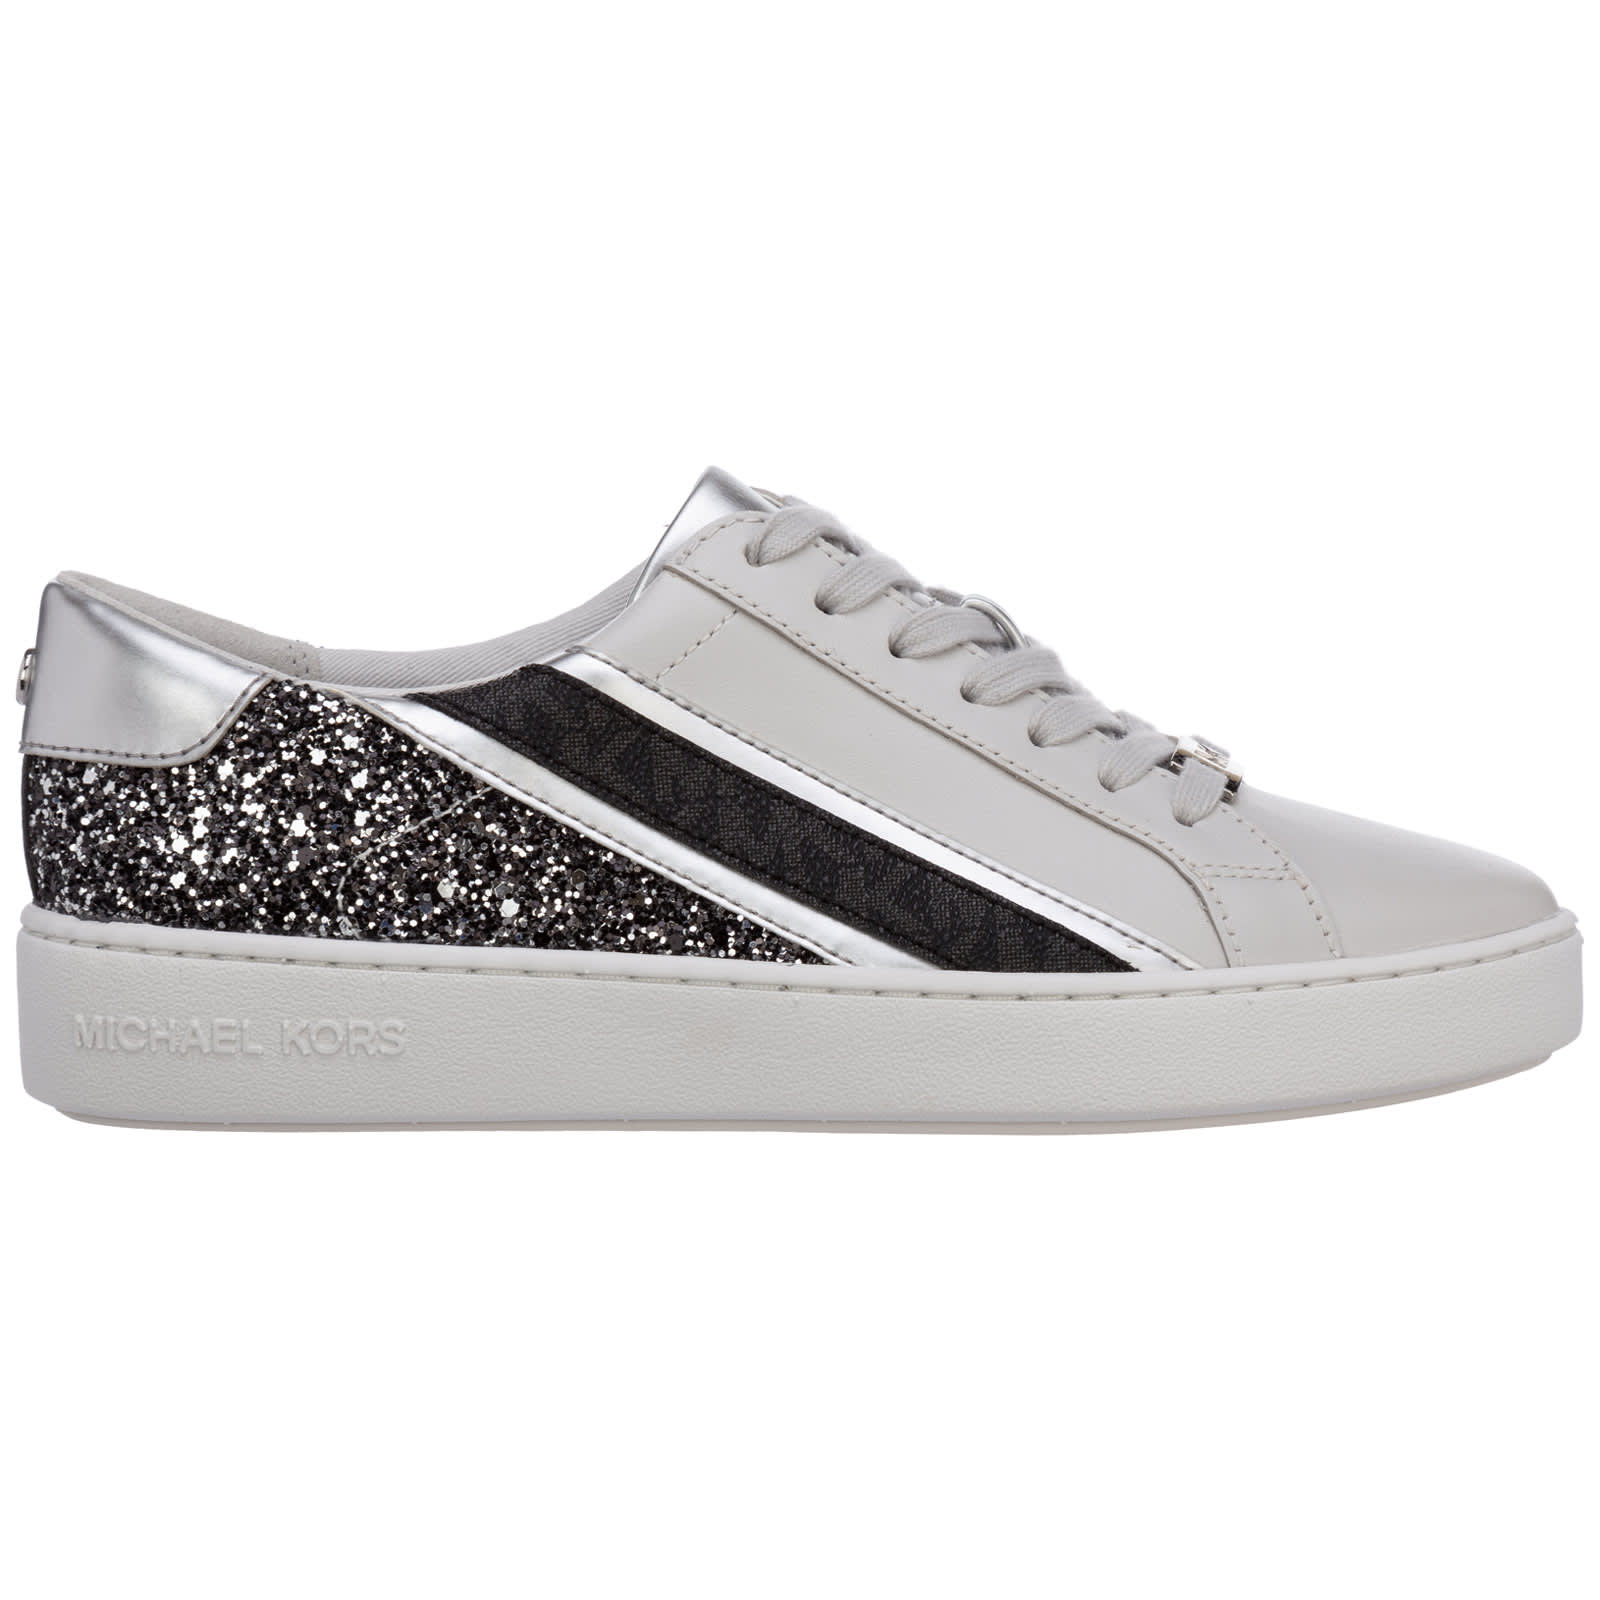 Buy Michael Kors Slade Sneakers online, shop Michael Kors shoes with free shipping